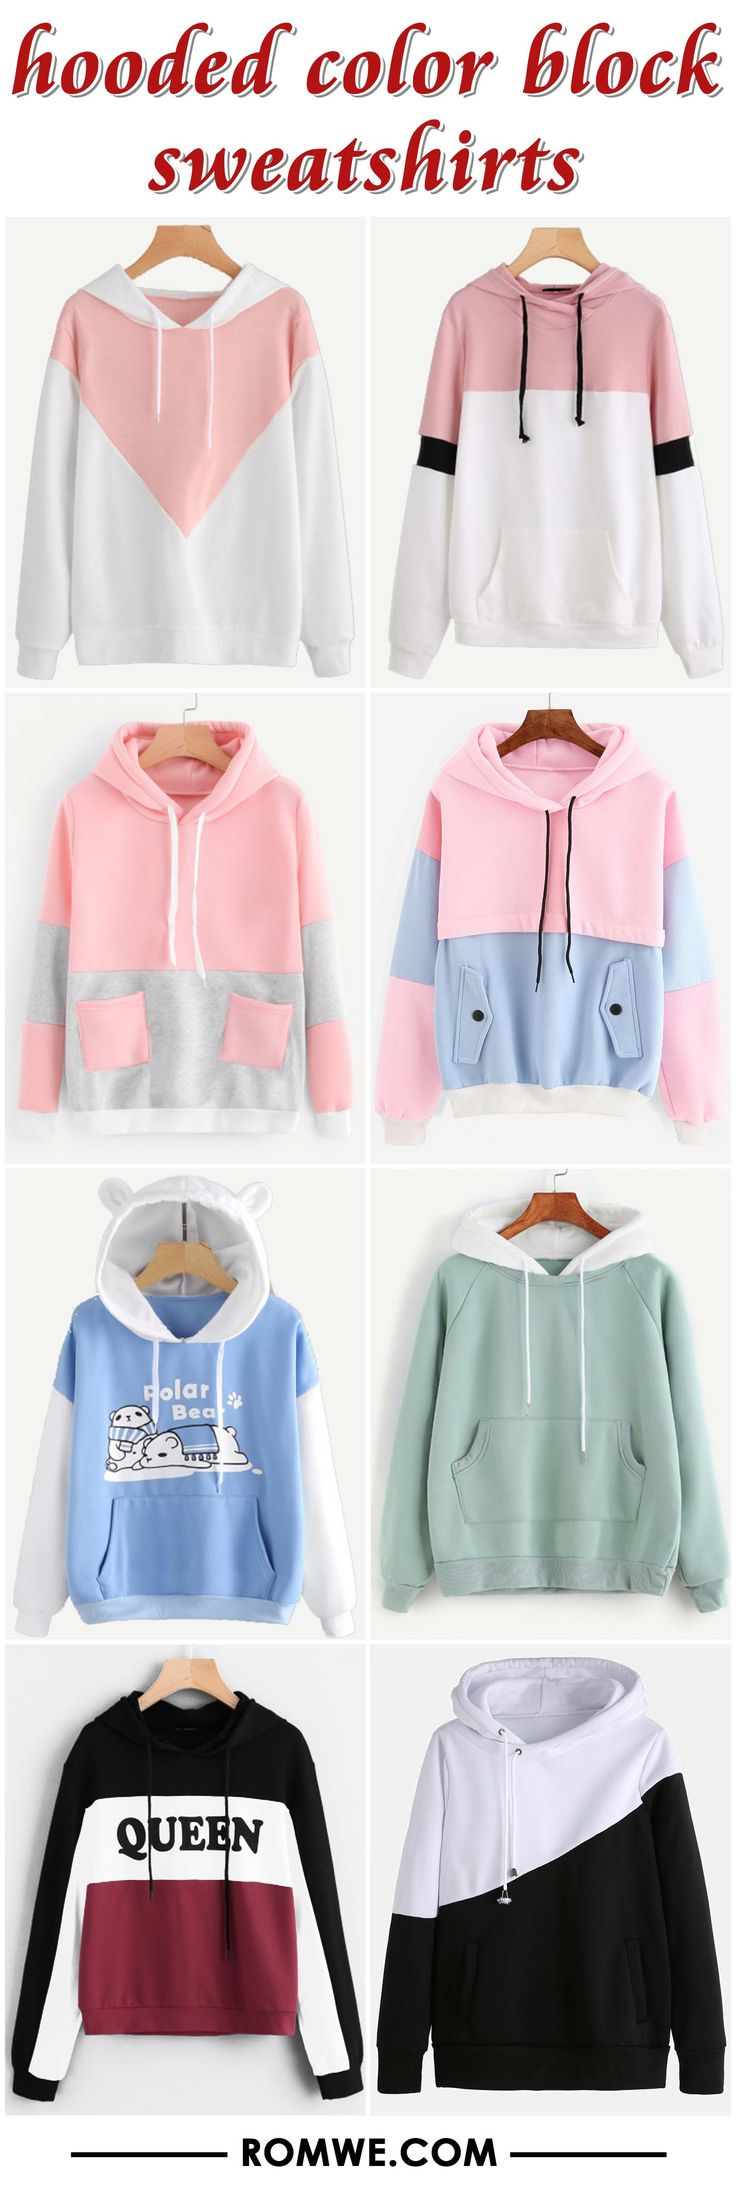 hooded color block sweatshirts from romwe.com